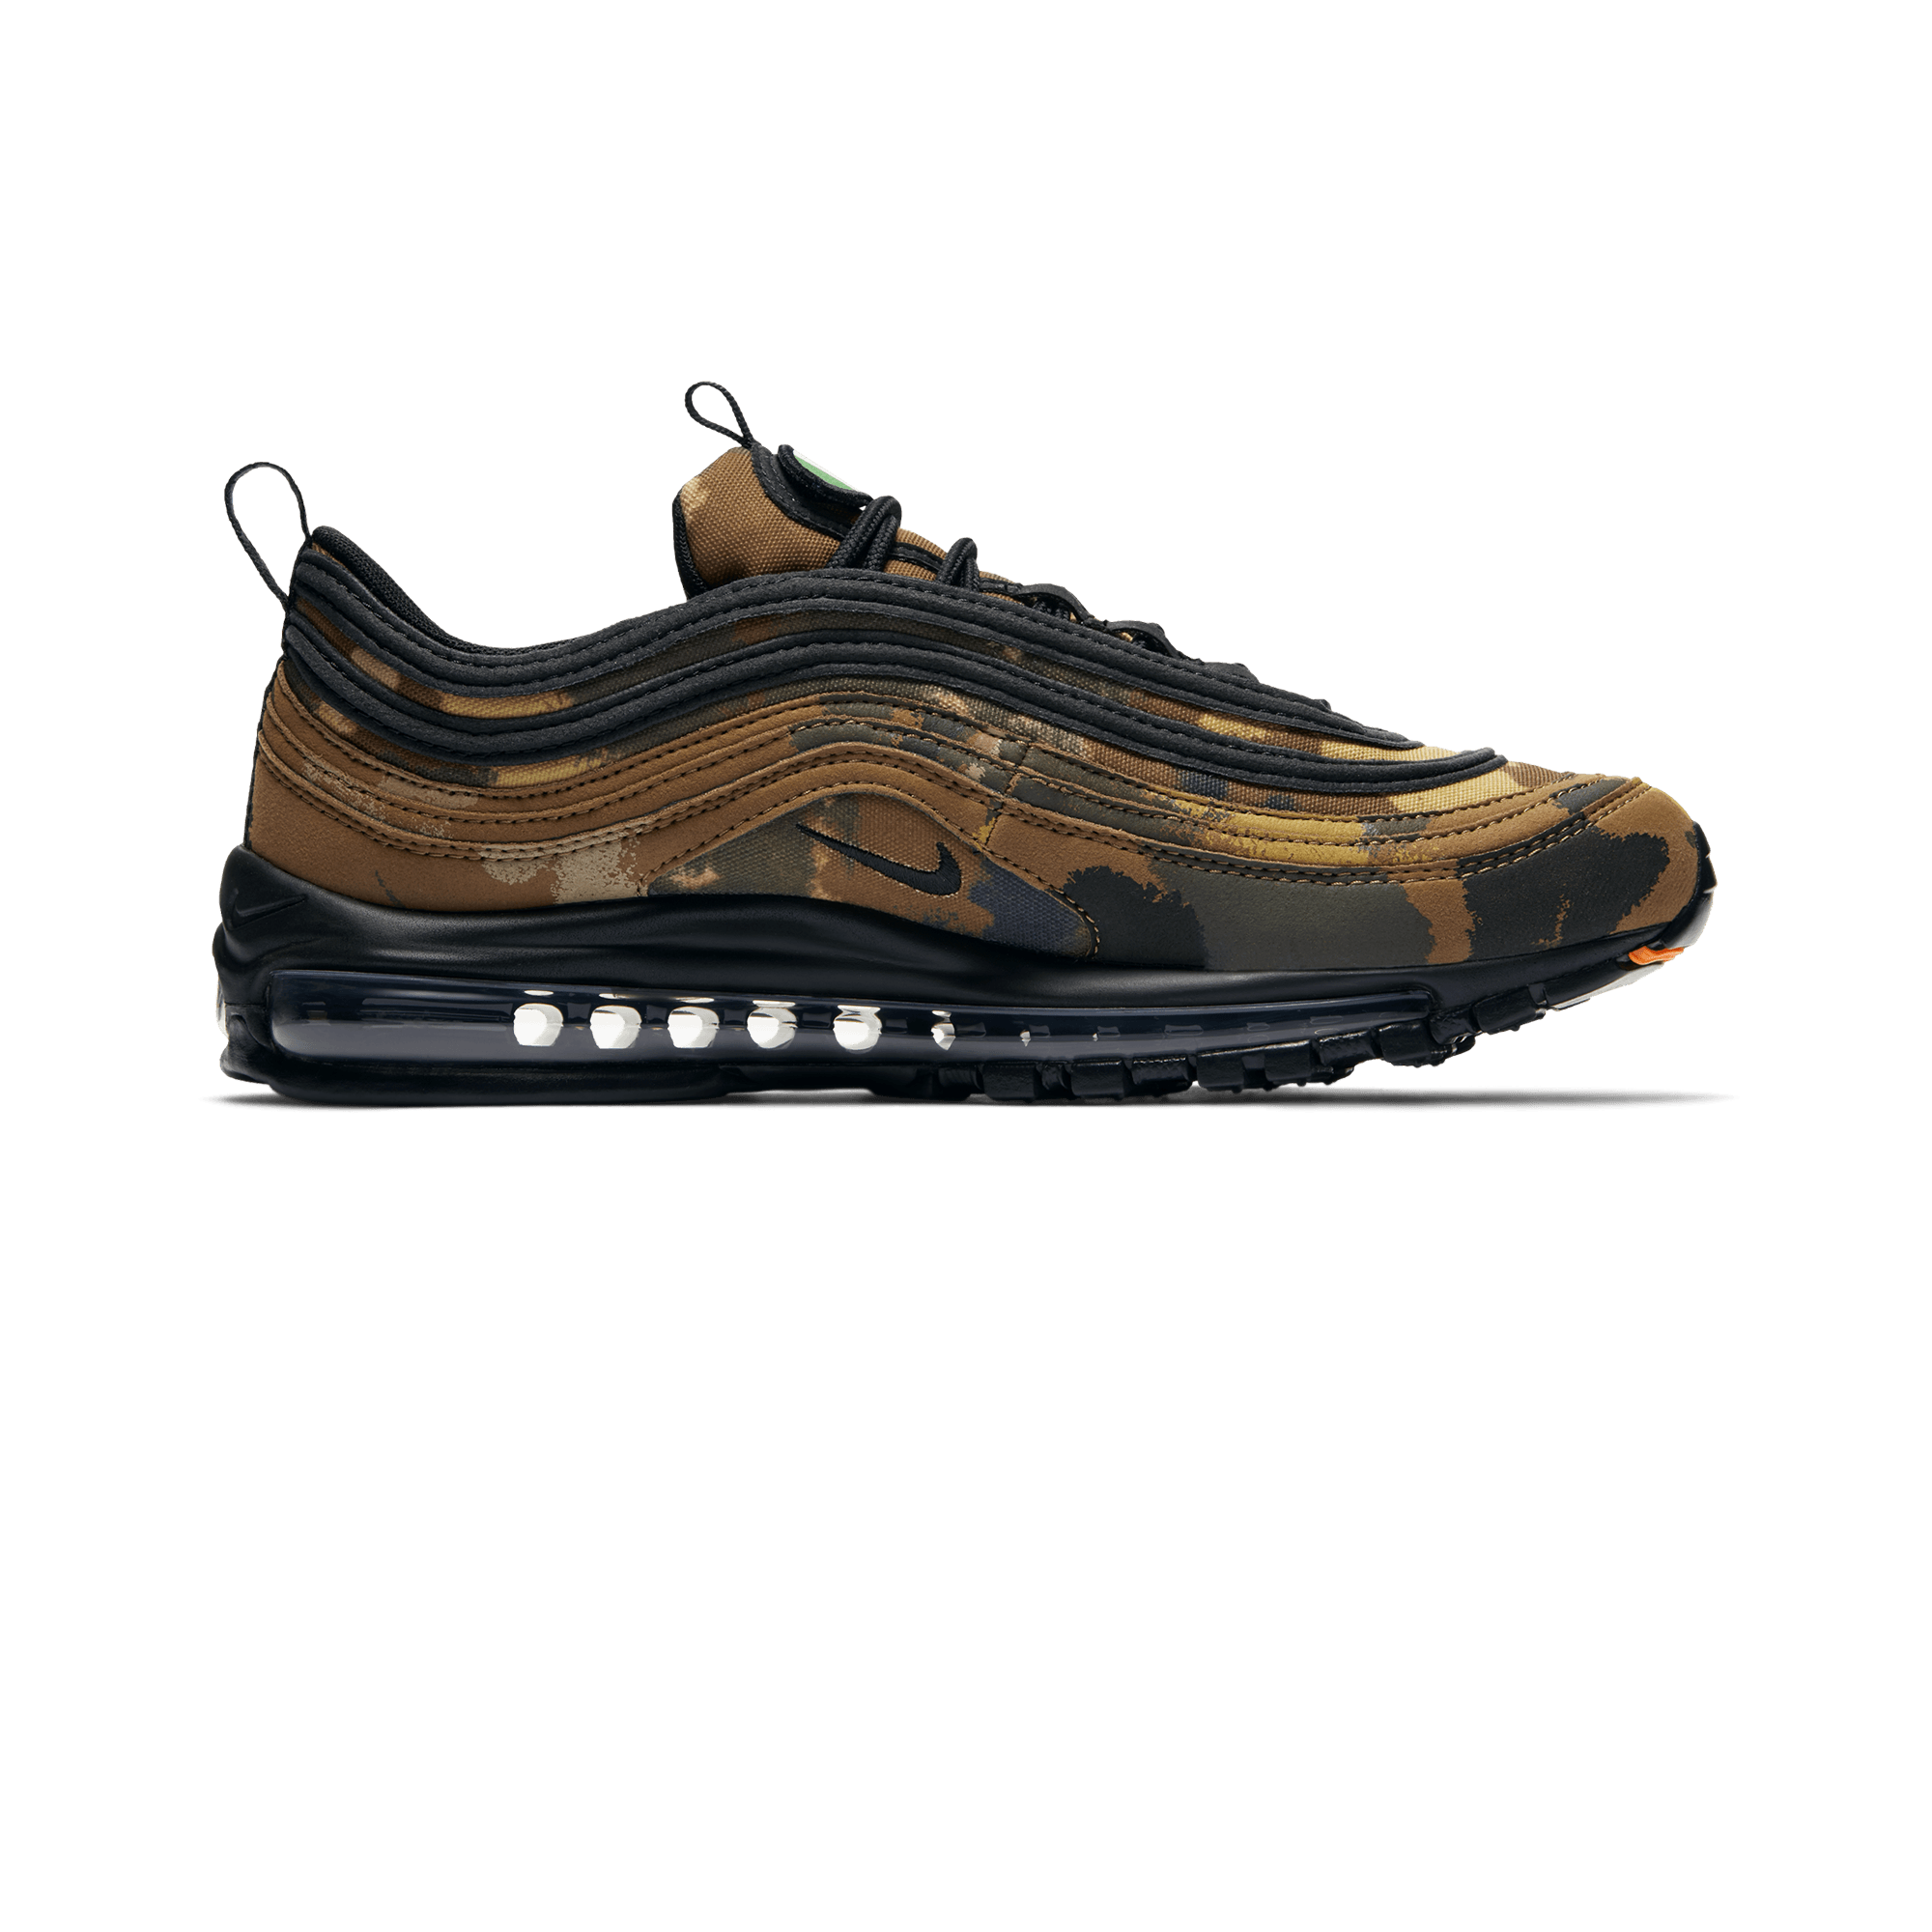 Air Max 97 PRM Italian Camo ale brown/black/cargo khaki